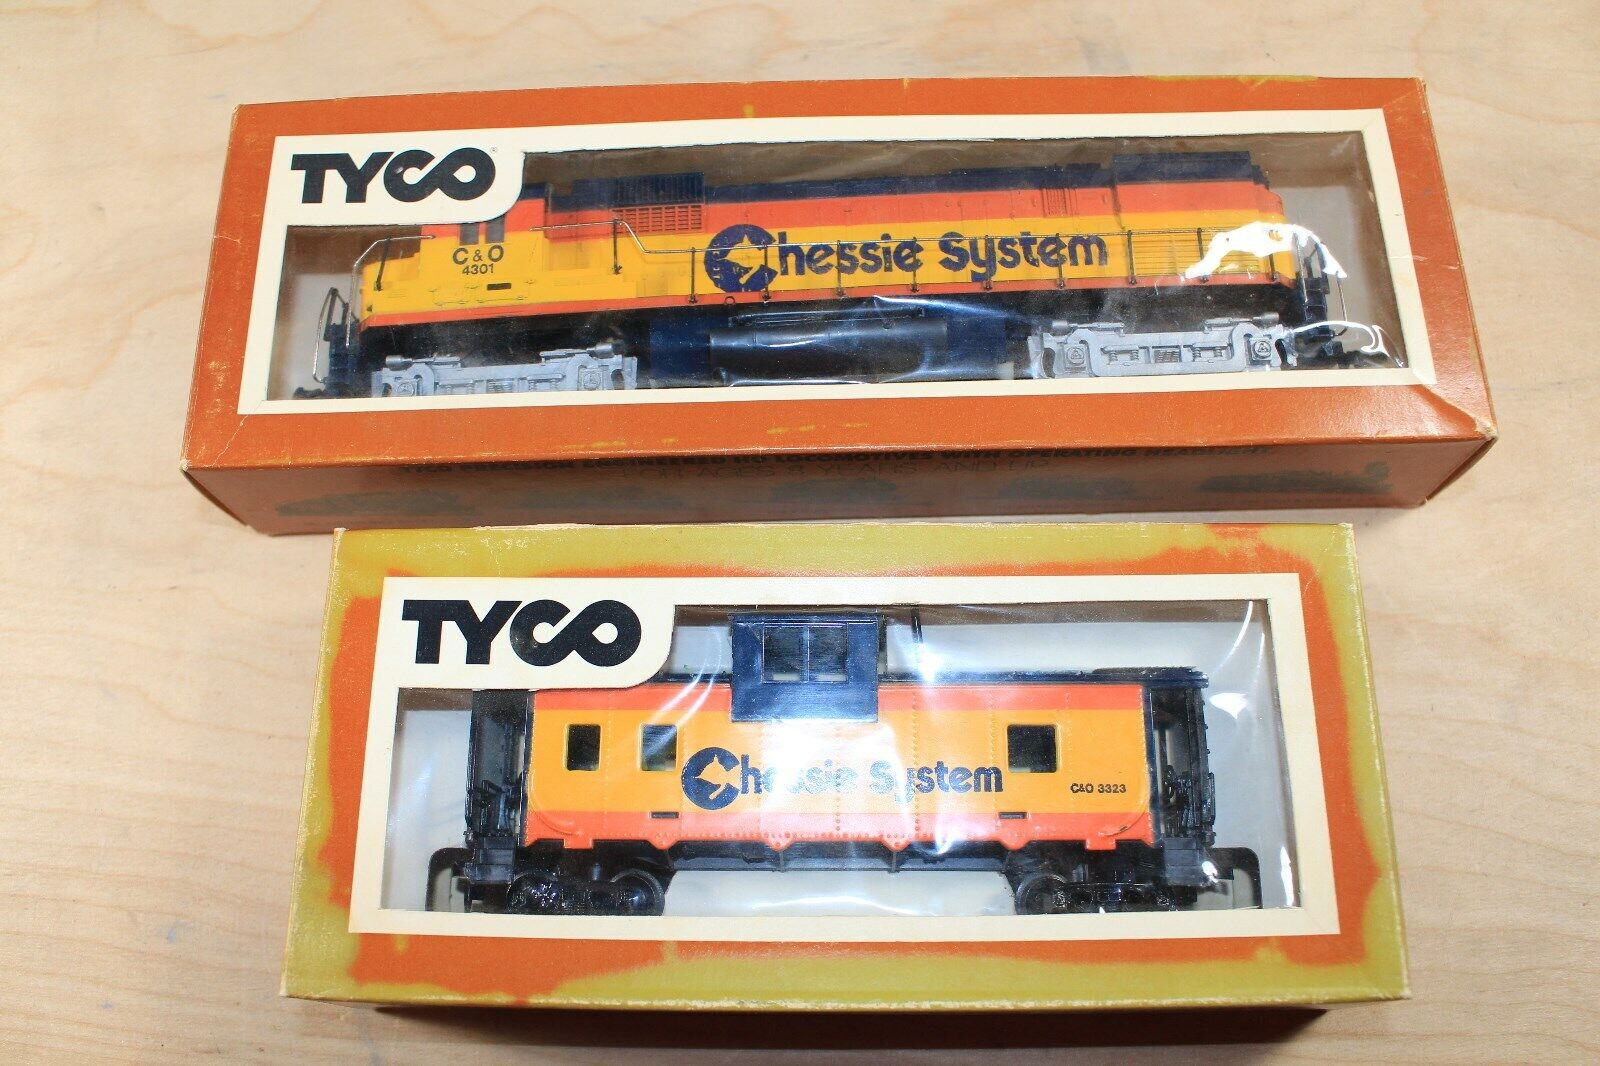 TYCO Vintage HO Scale Diesel Alco Century 430 Chessie System Caboose - $25.00